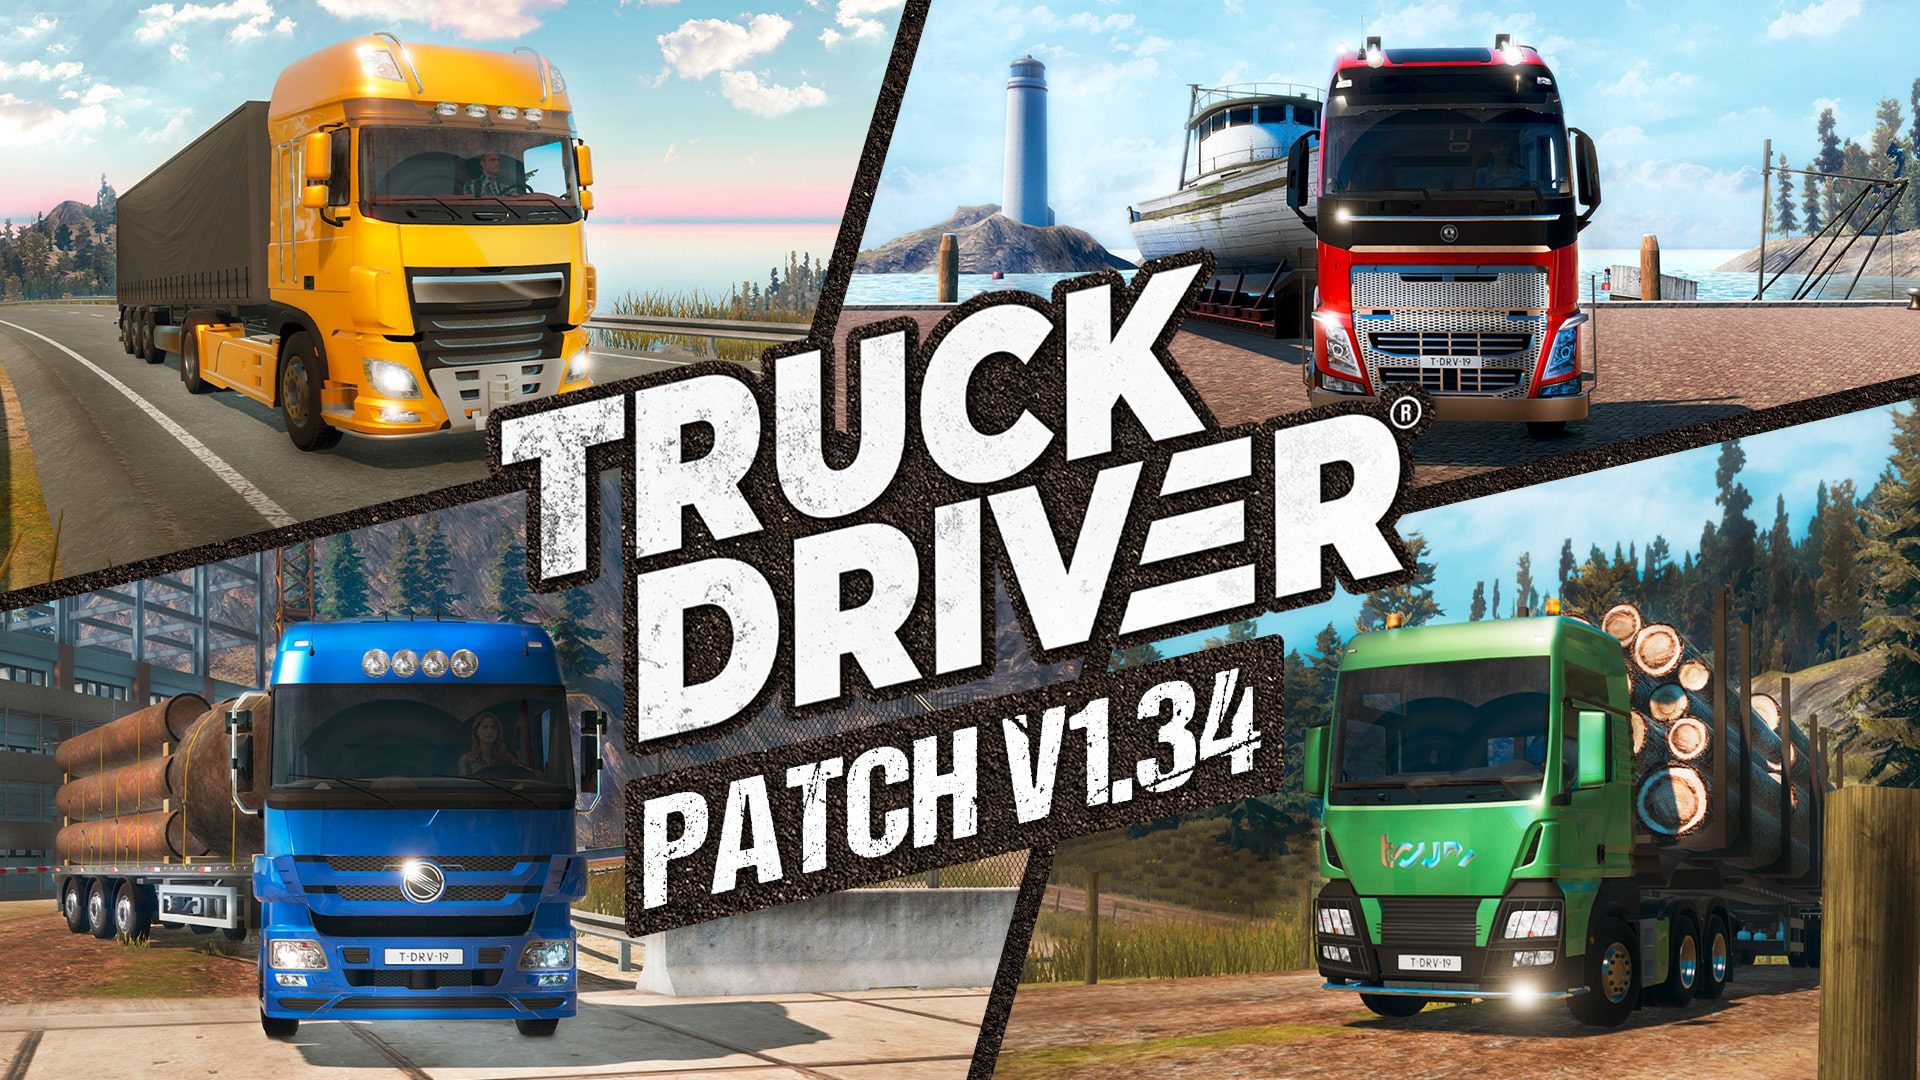 Truck Driver update v1.34 now live on PlayStation®4, Xbox One, Nintendo Switch & PC